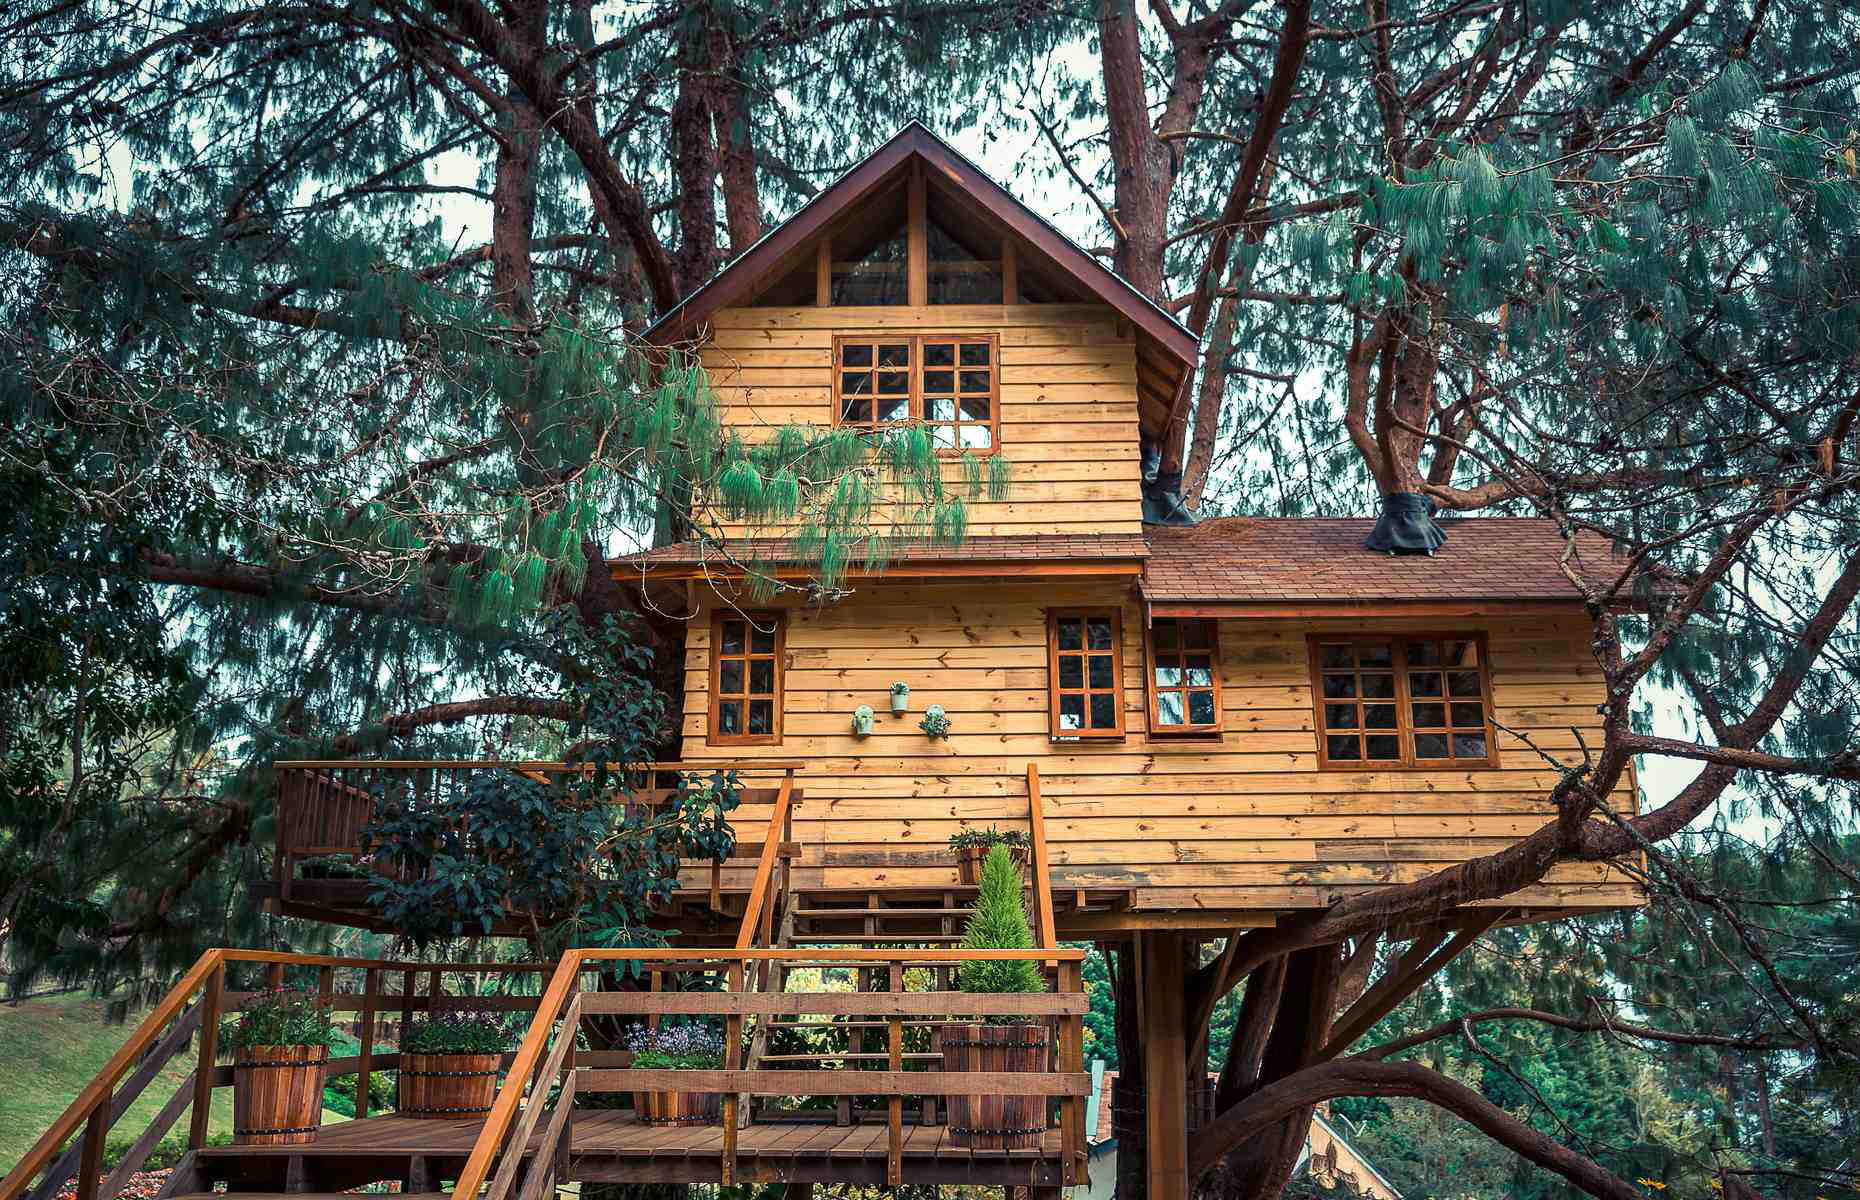 Quirky treehouse (image: Luciana Rinaldi/Shutterstock)